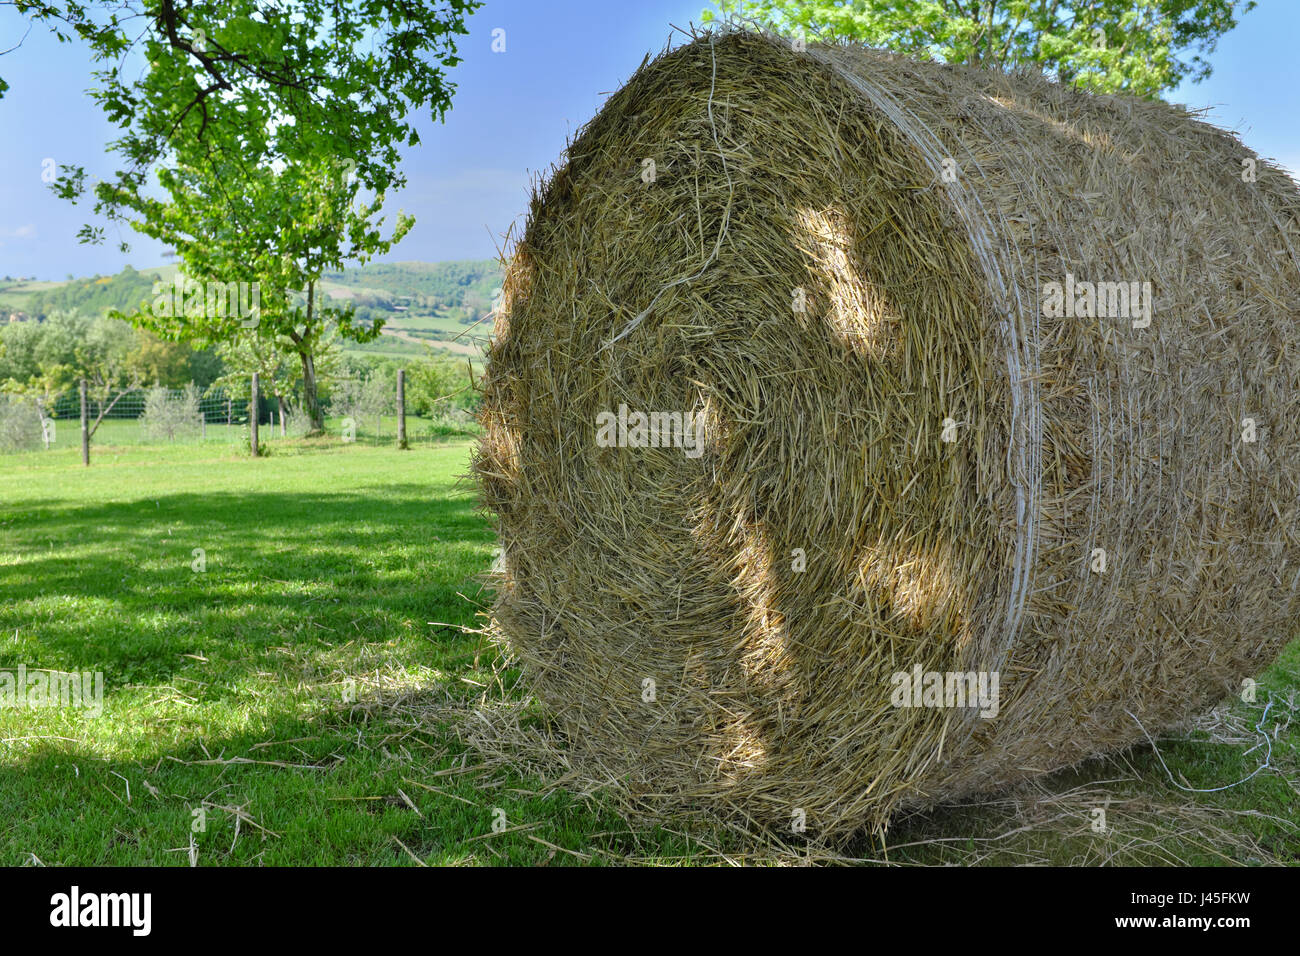 round-hay-bale-in-spring-enclosed-field-